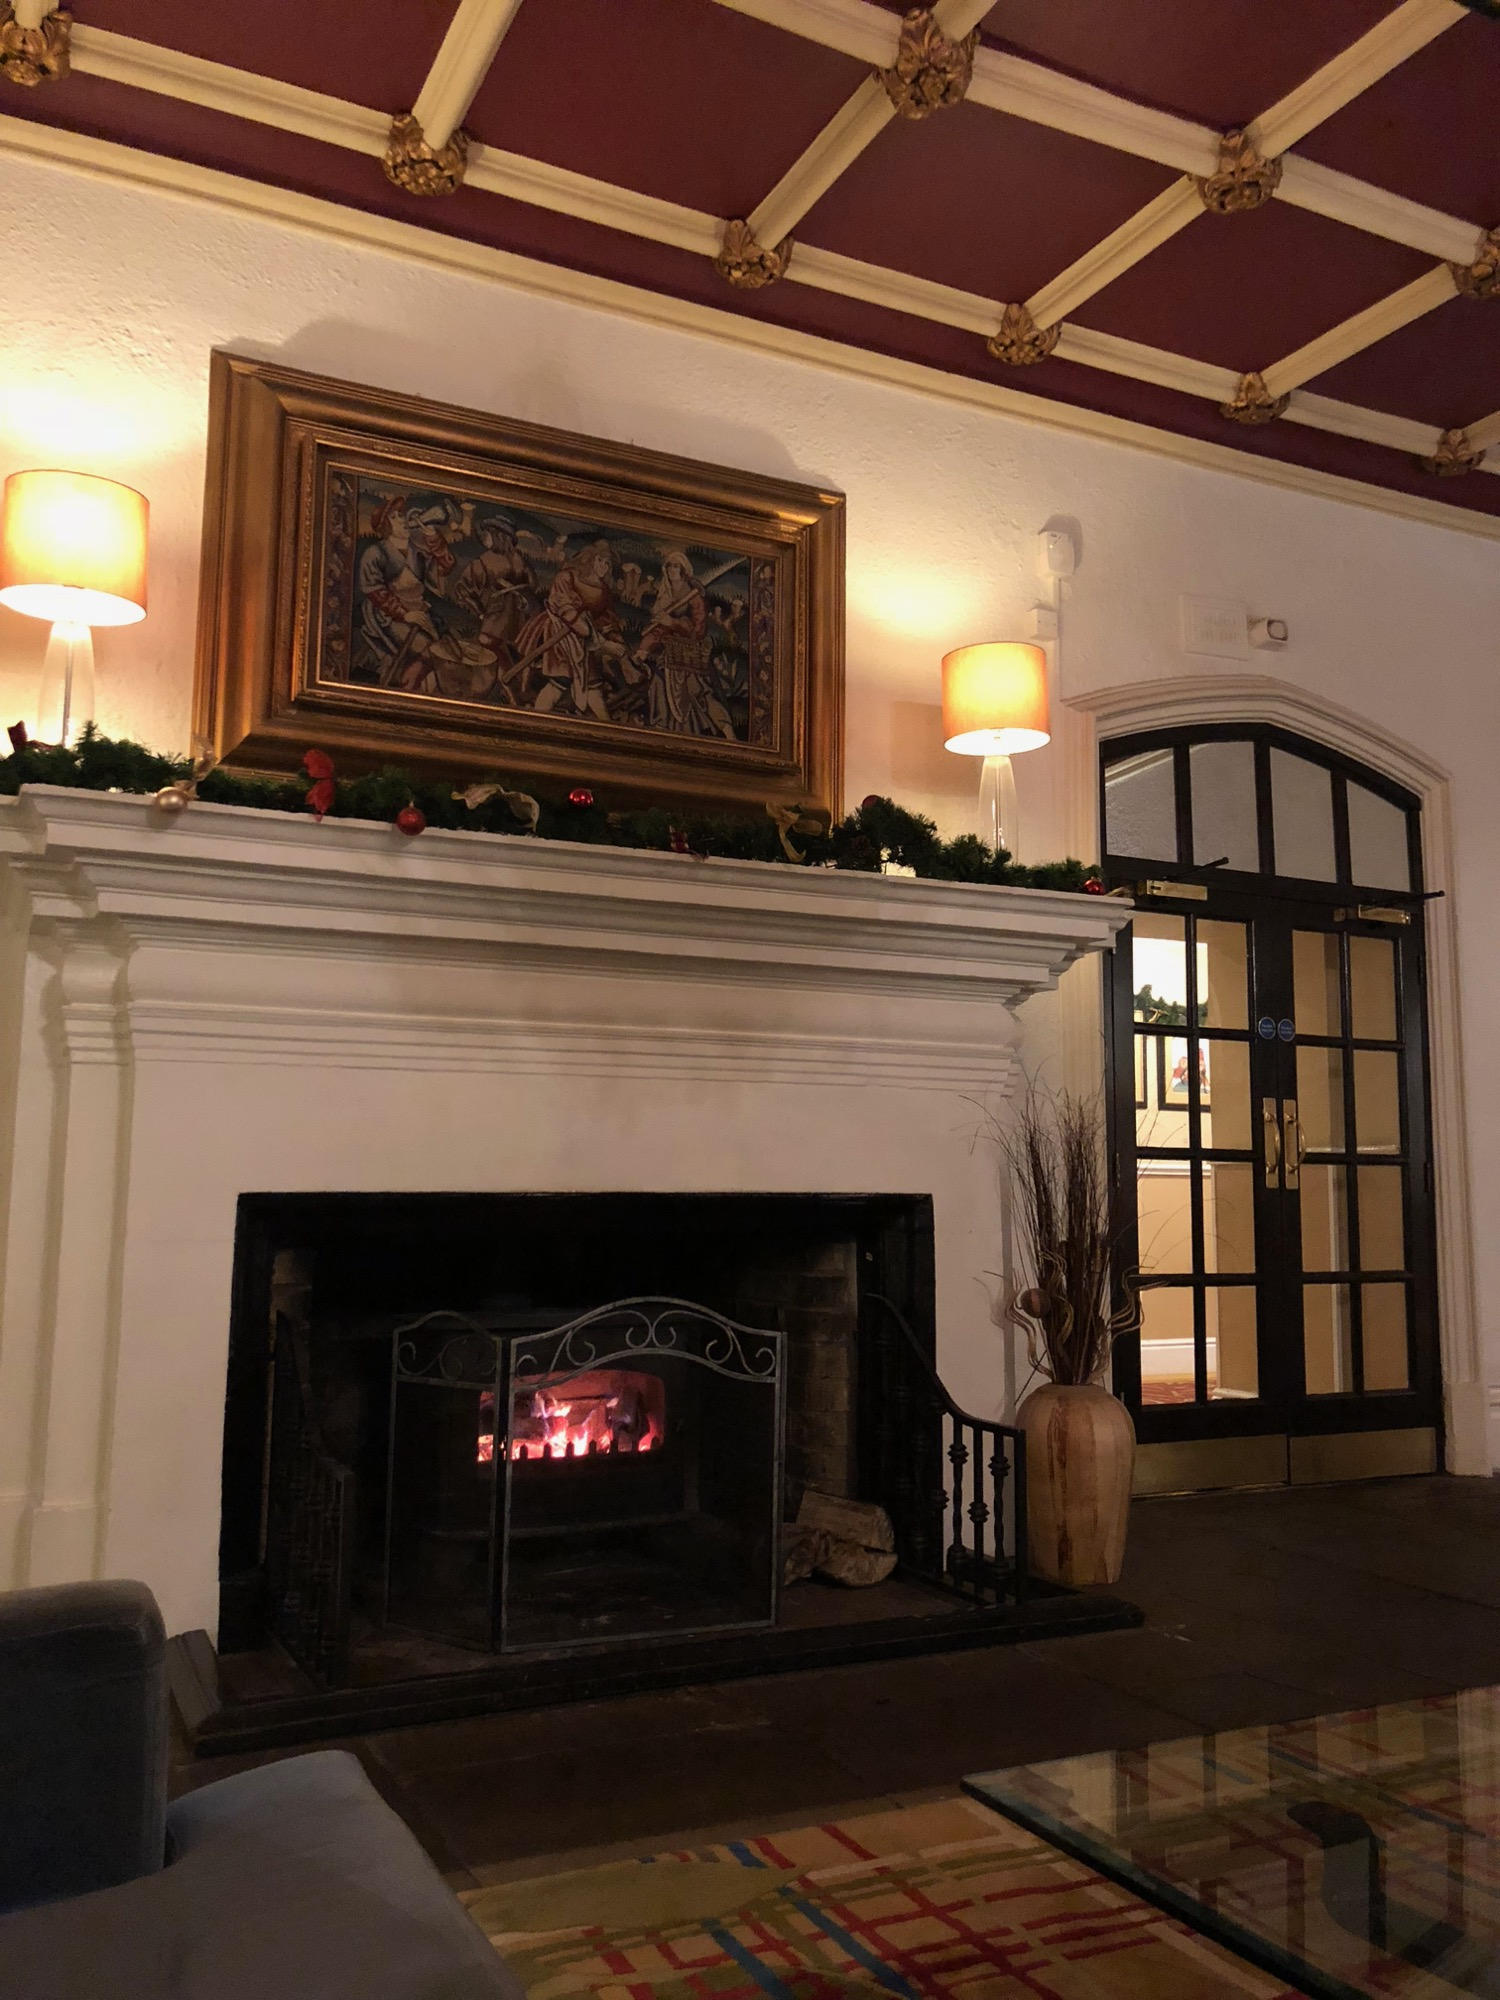 The lovely fireplace in the main lounge